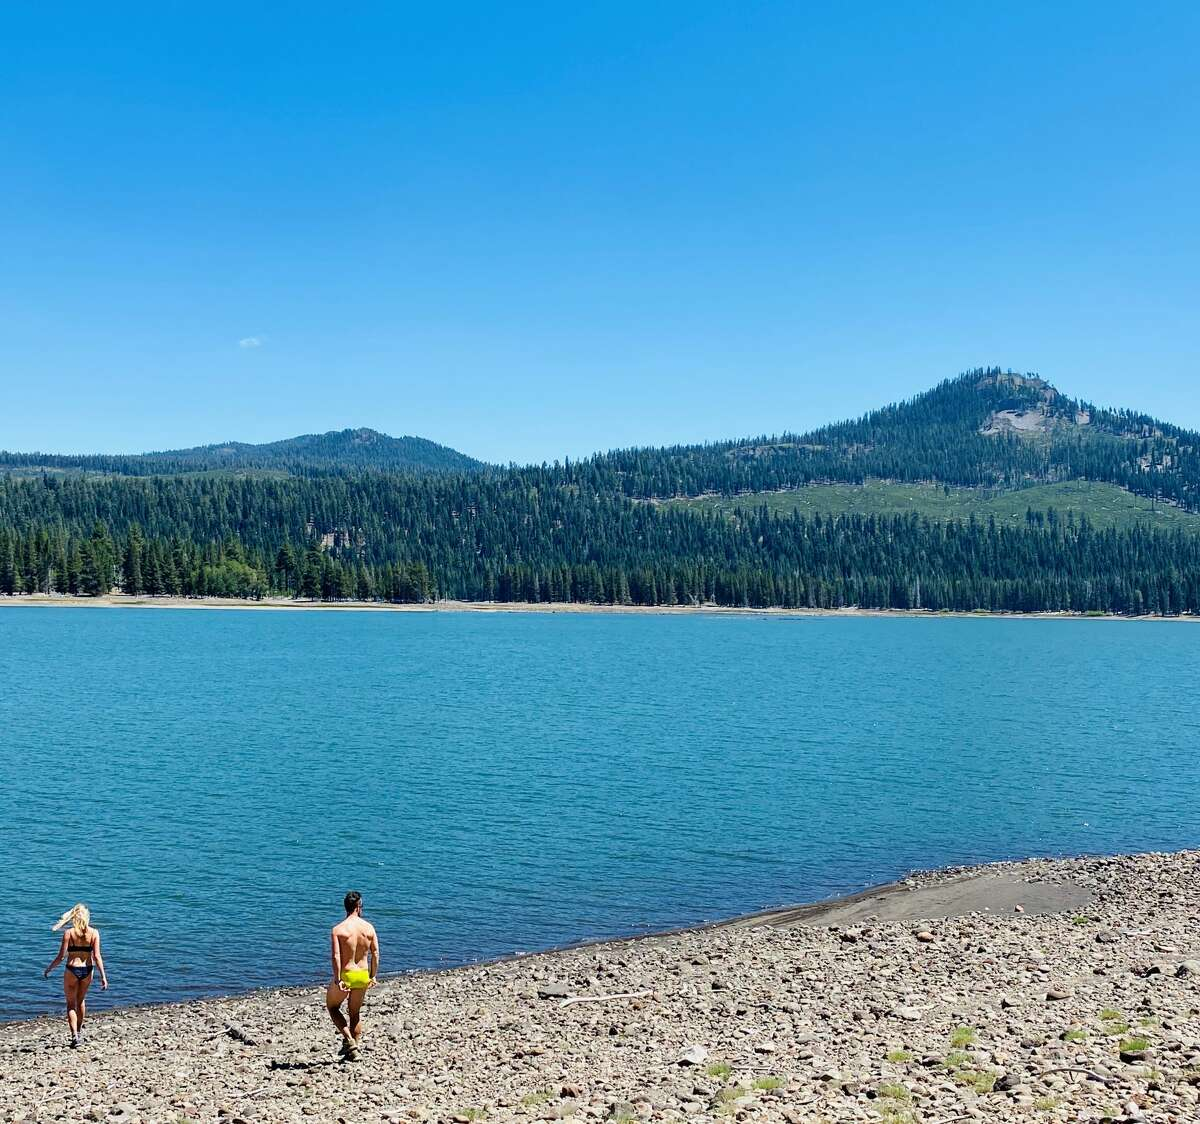 Two hikers take a dip in Snag Lake.